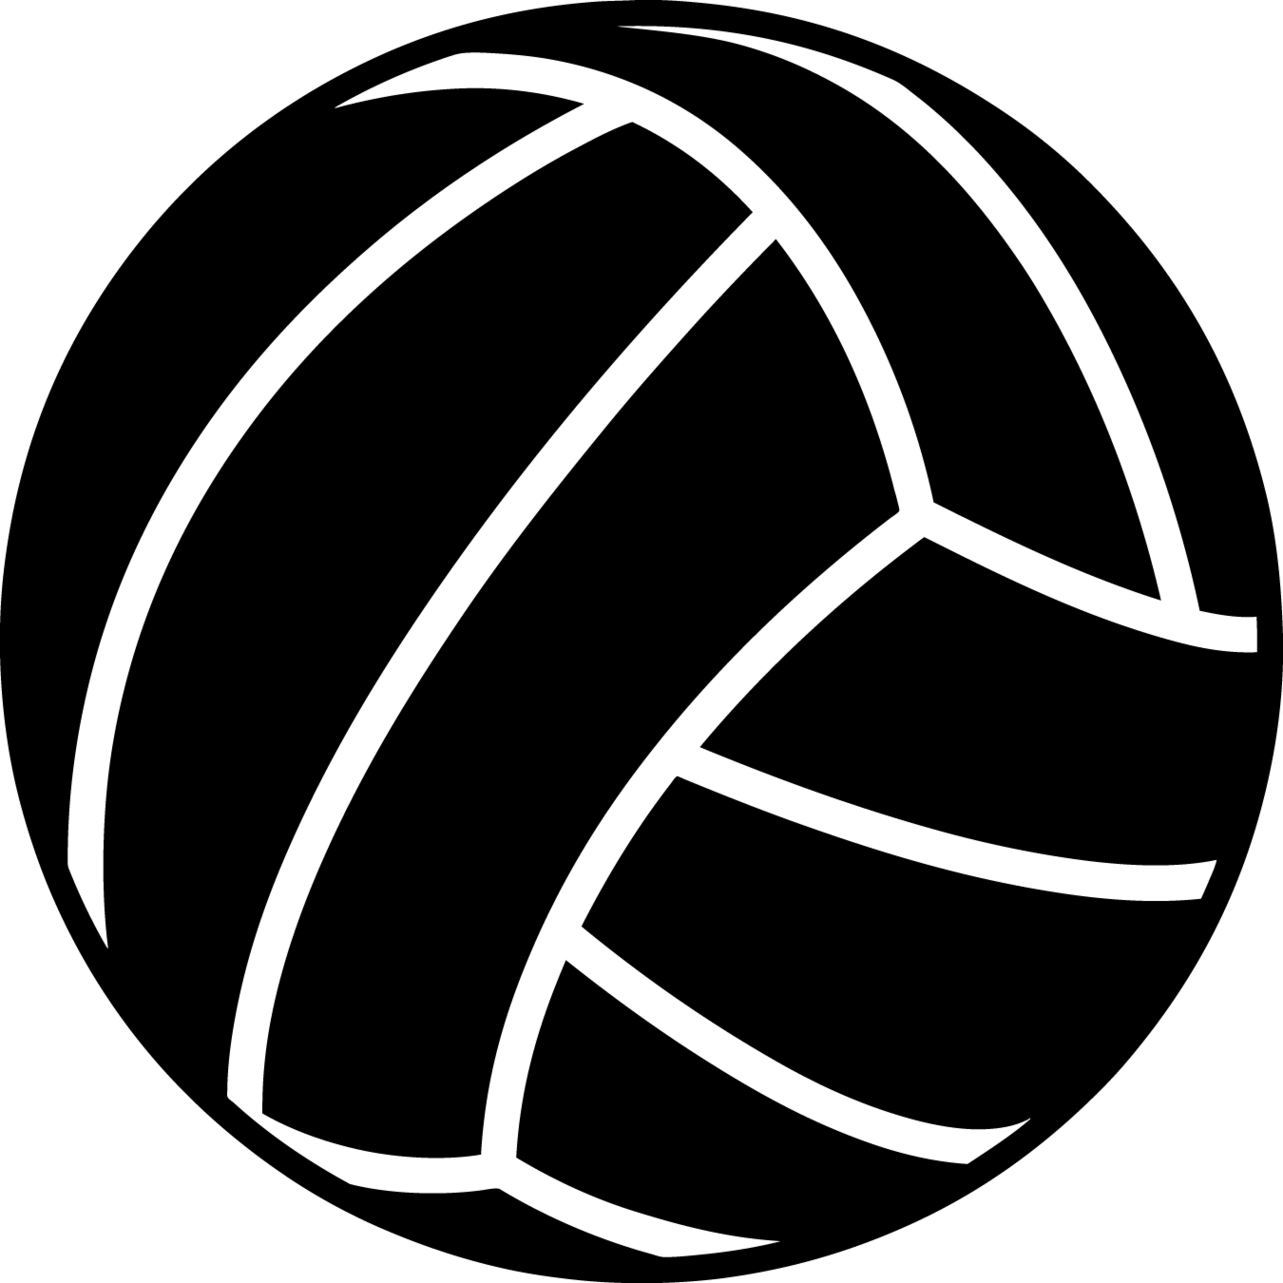 Volley ball png. Volleyball image purepng free